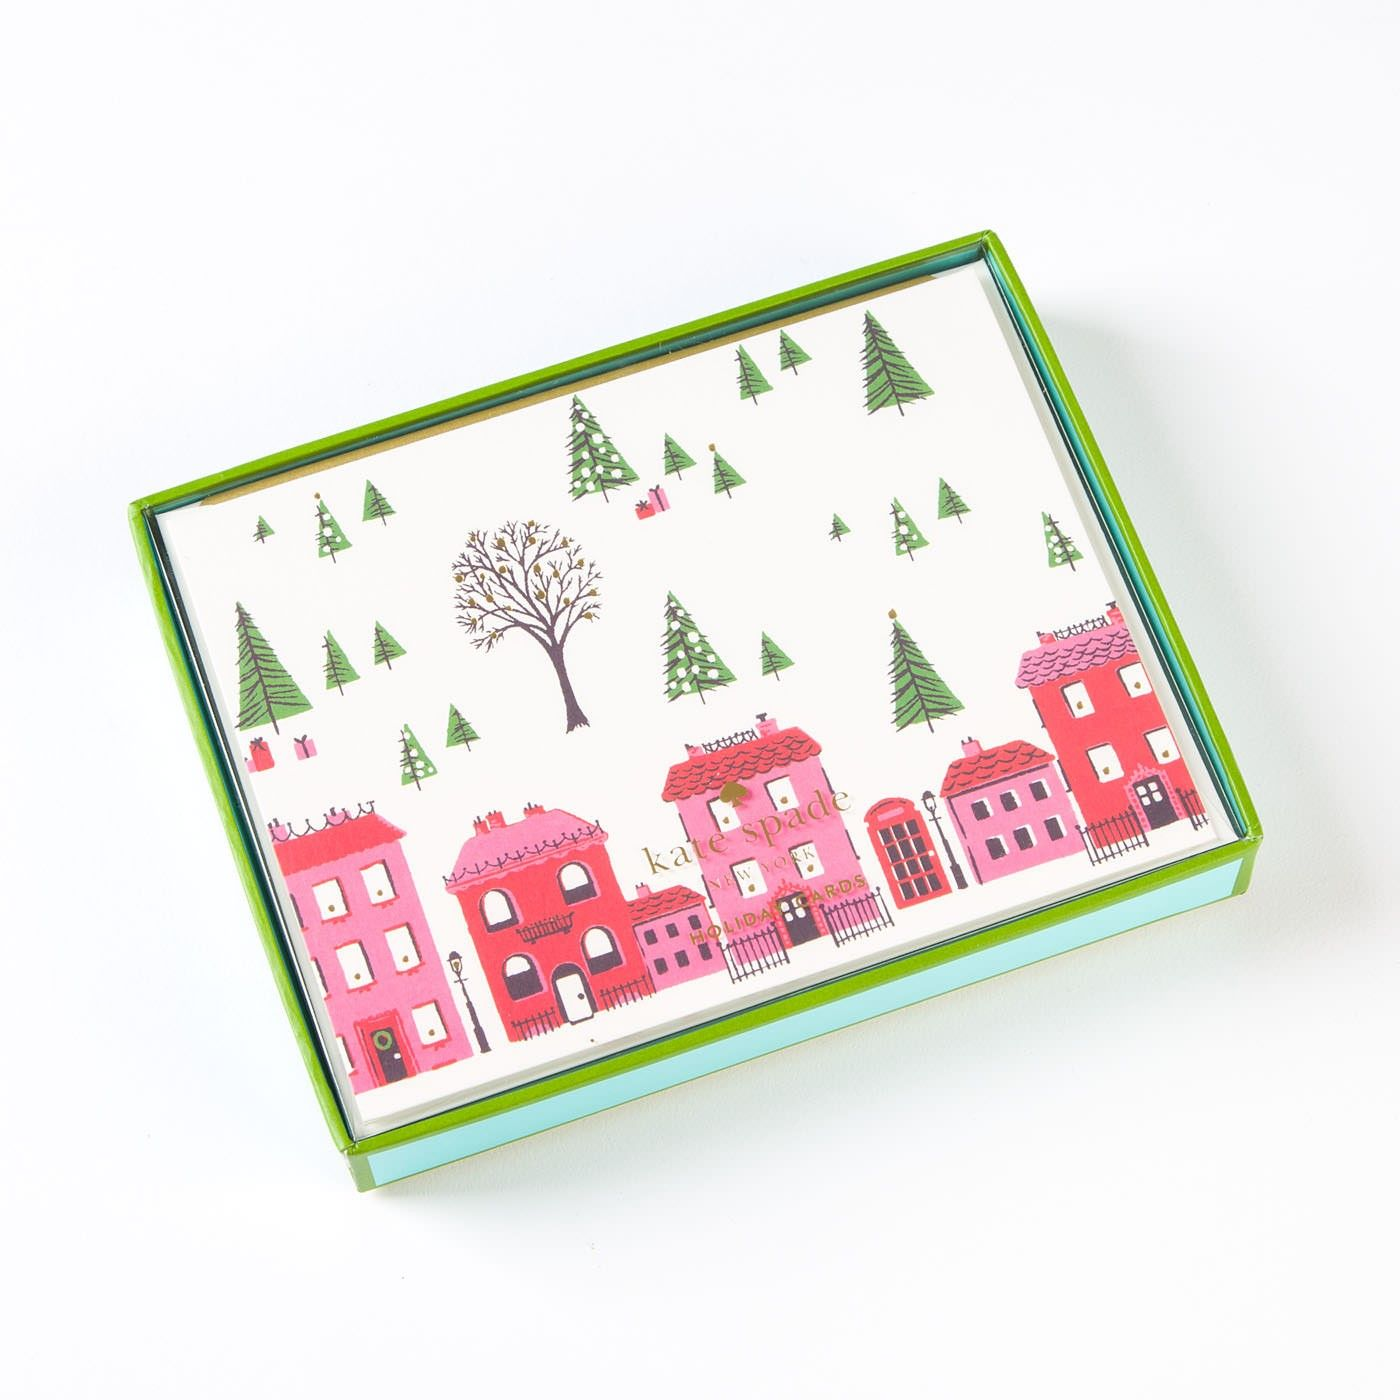 home for the holidays boxed holiday cards by kate spade new york set of 10 - Boxed Holiday Cards